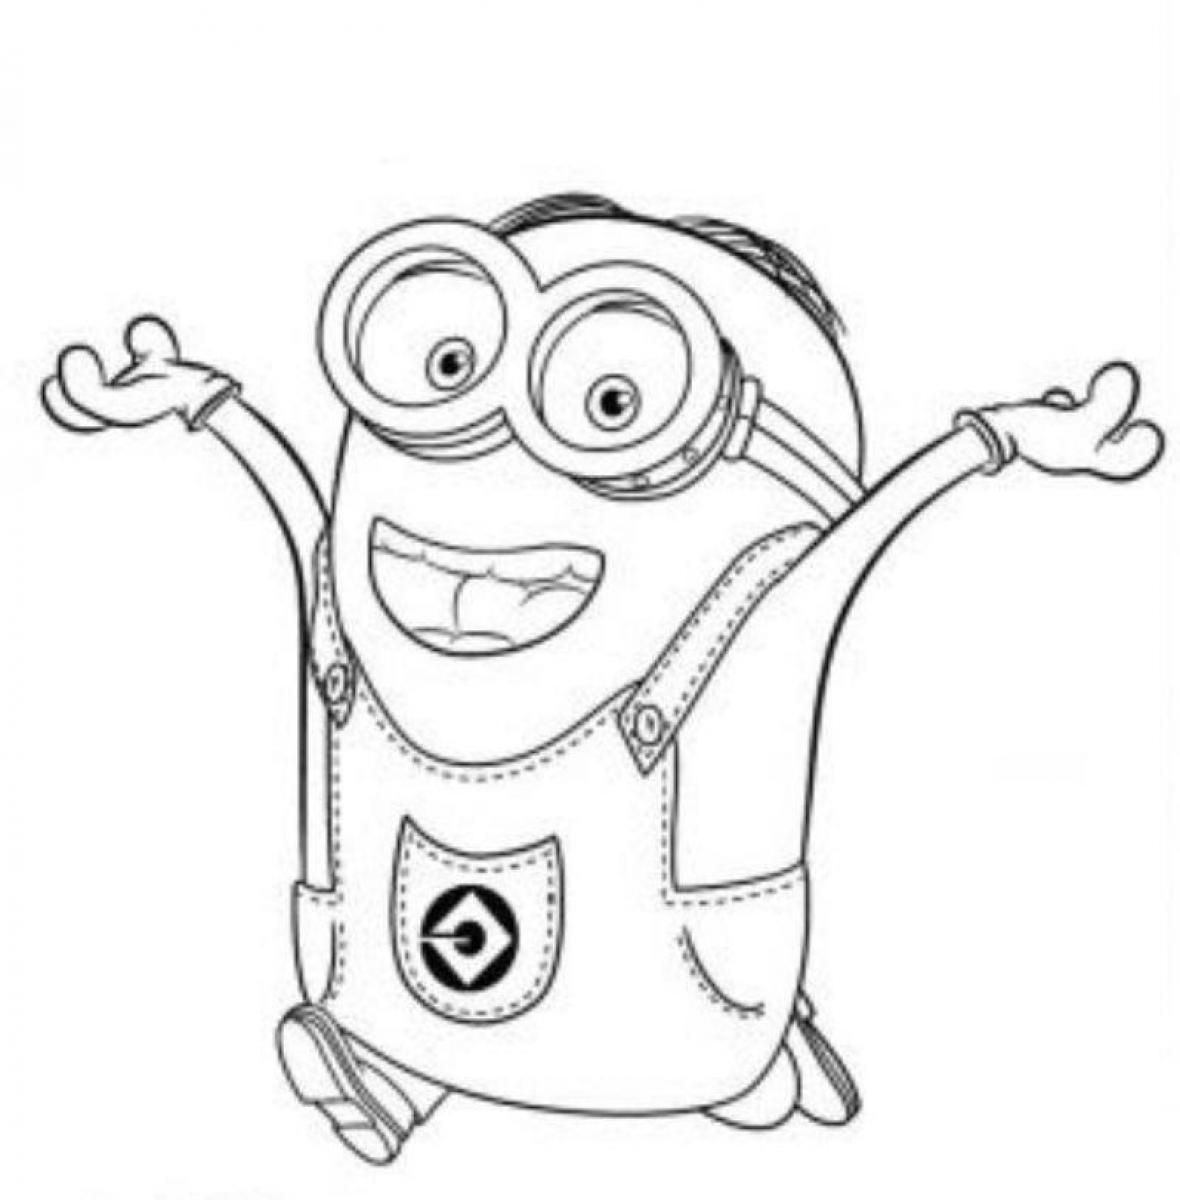 1180x1200 Minion Coloring Pages With Cute Bob And Bear Minions Page At Pdf